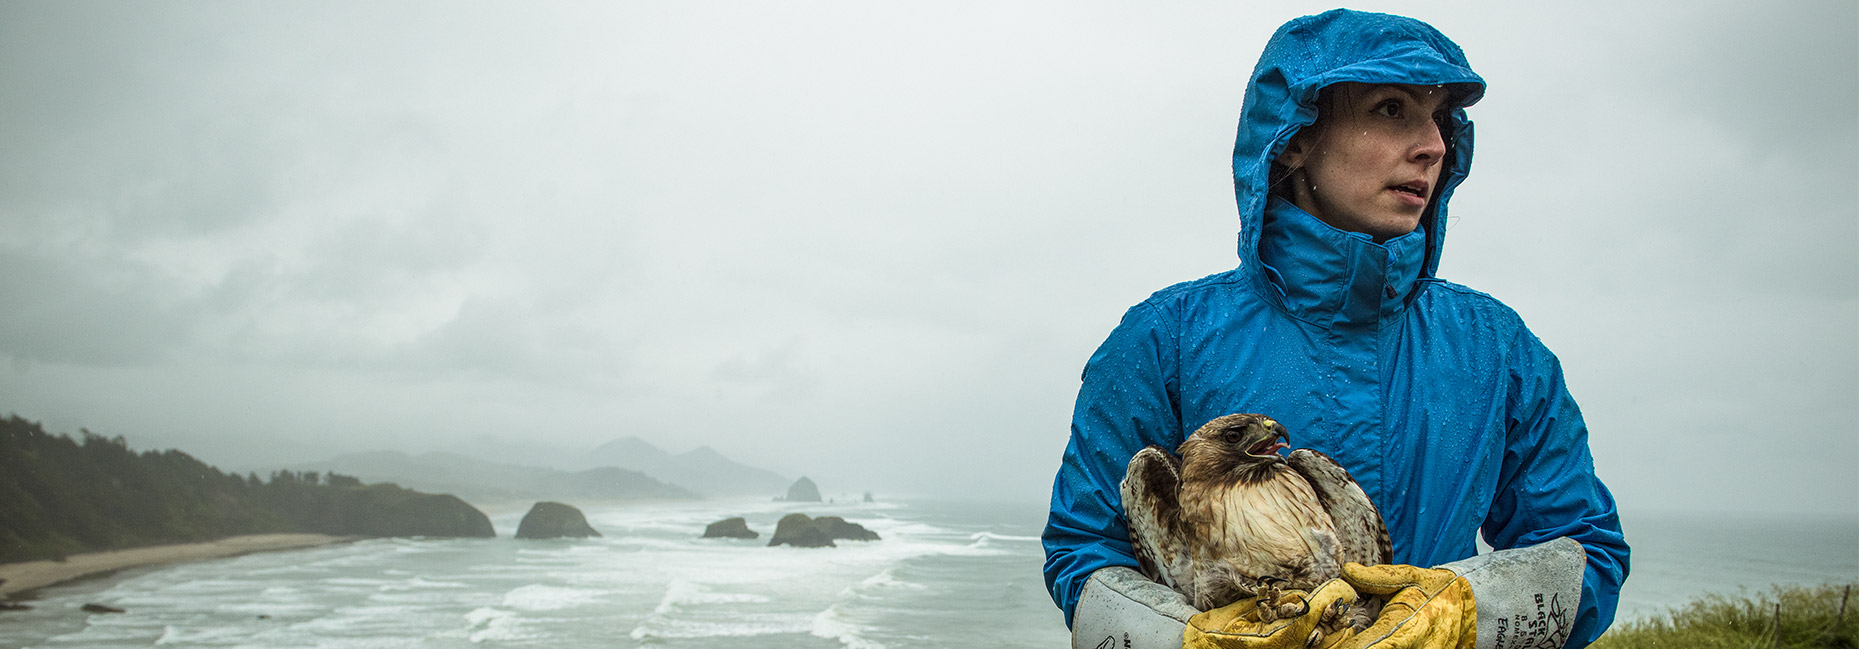 Woman in blue raincoat holding a halk in her arms, in front of a rocky coastline.